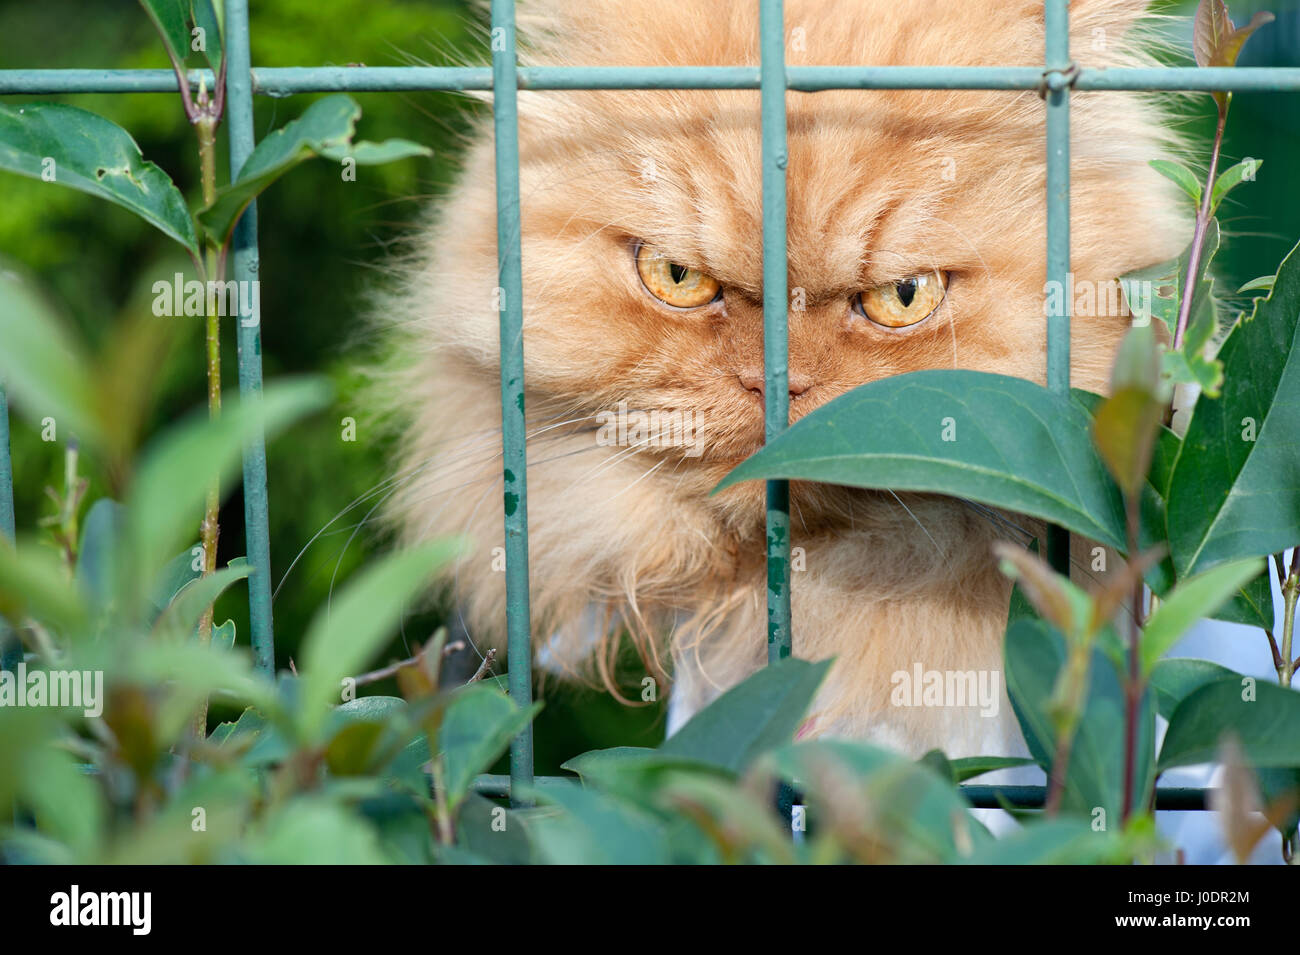 Close-Up Of Persian Cat Behind Fence - Stock Image